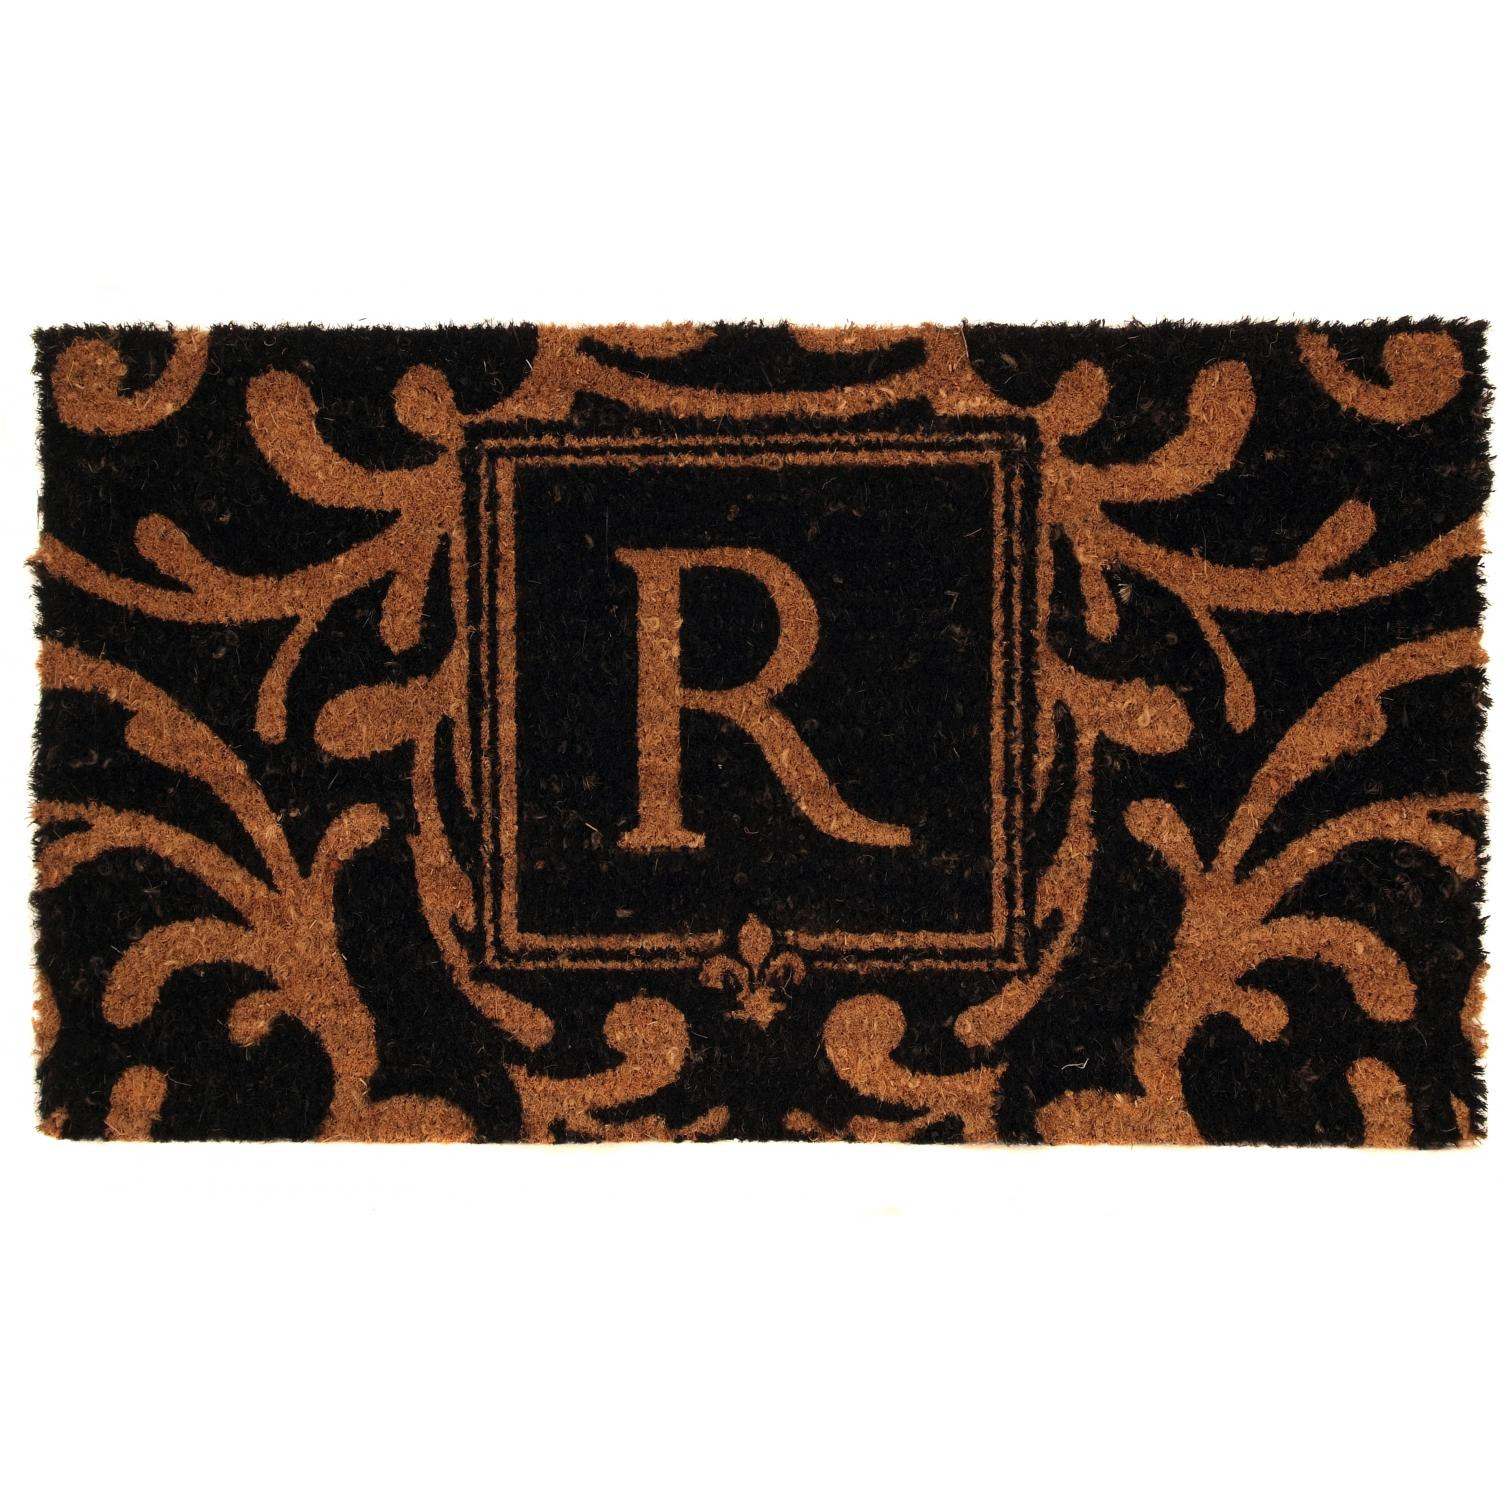 Picture of Evergreen Classic Block Monogram Coir Door Mat - Letter R